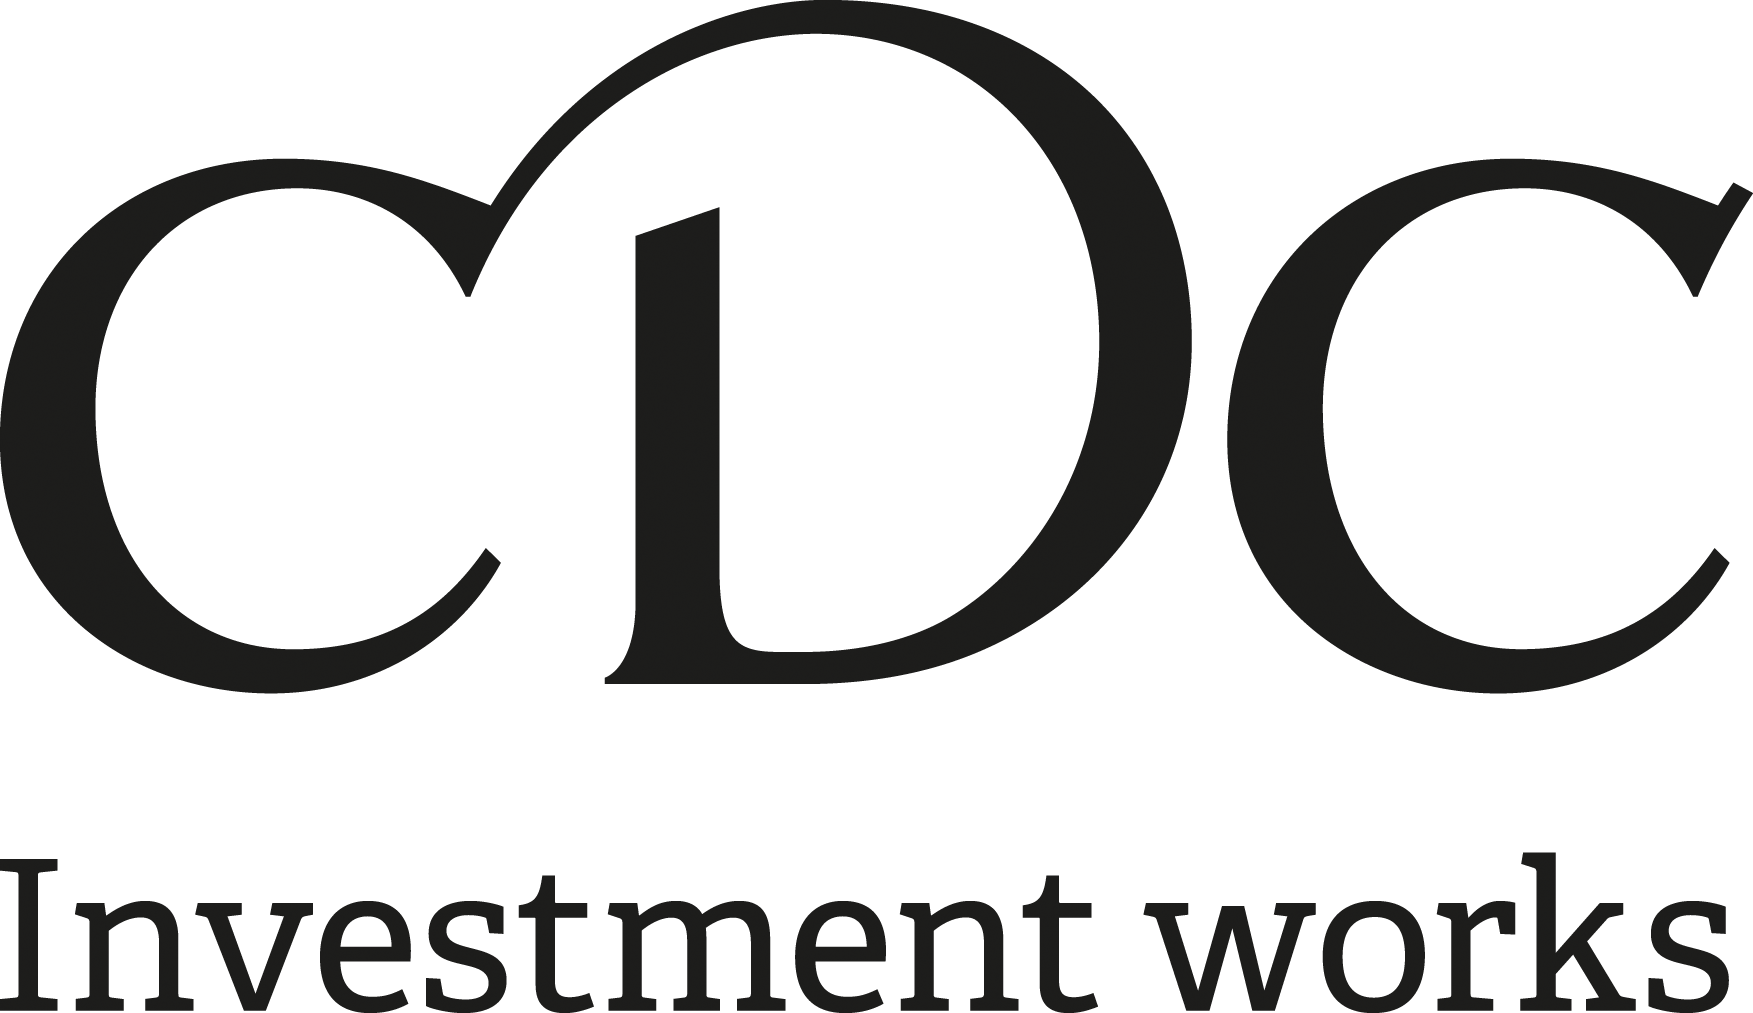 CDC Investment Works